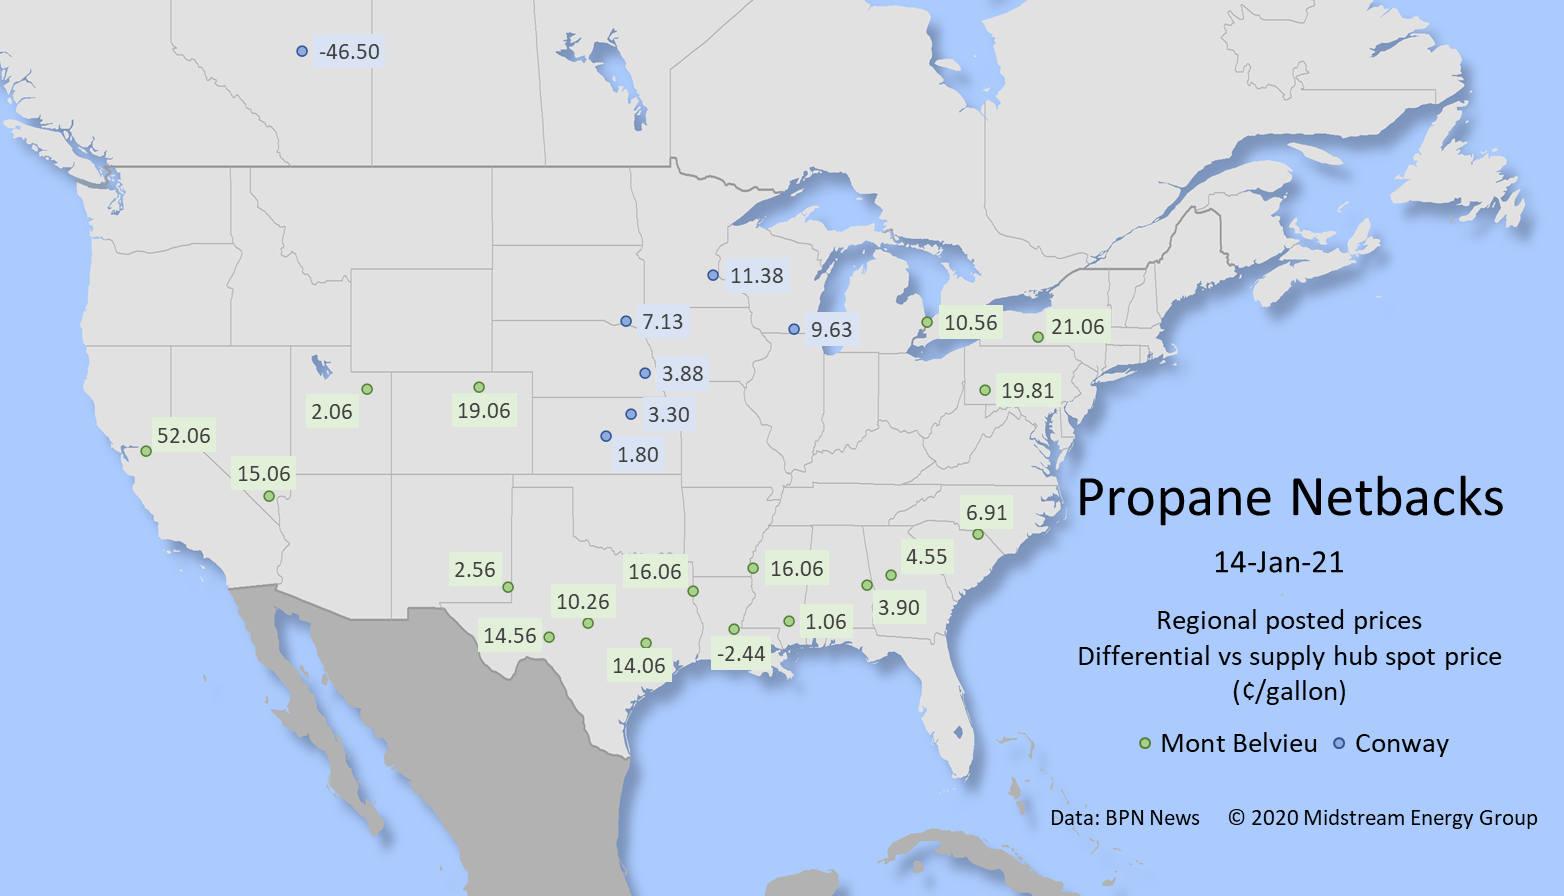 Compares propane prices in regional markets to supply hub prices